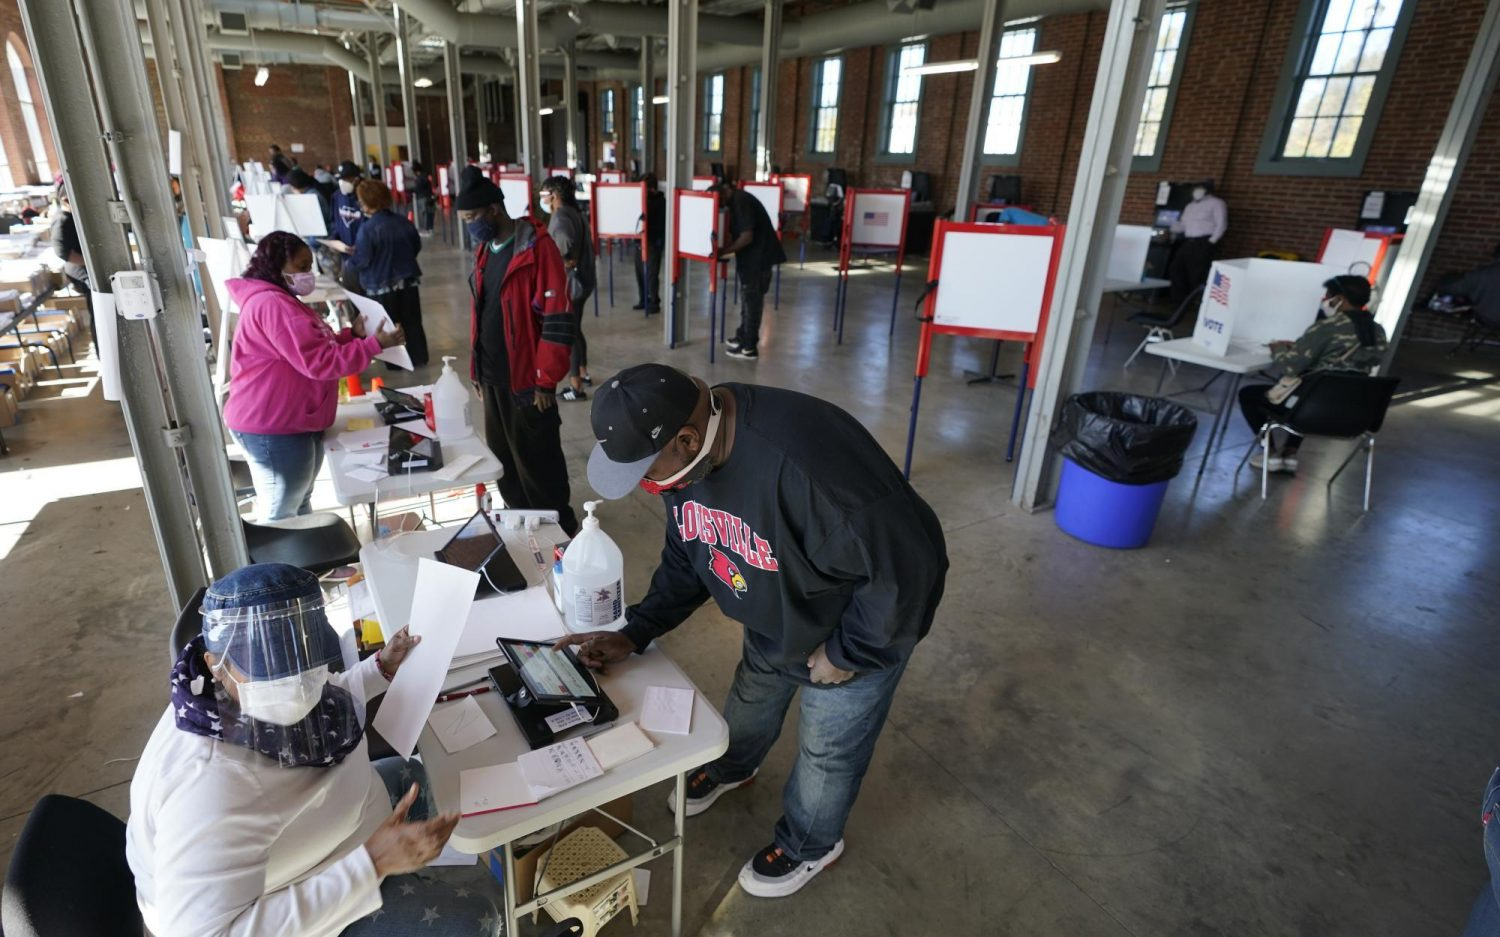 Election Day snapshots